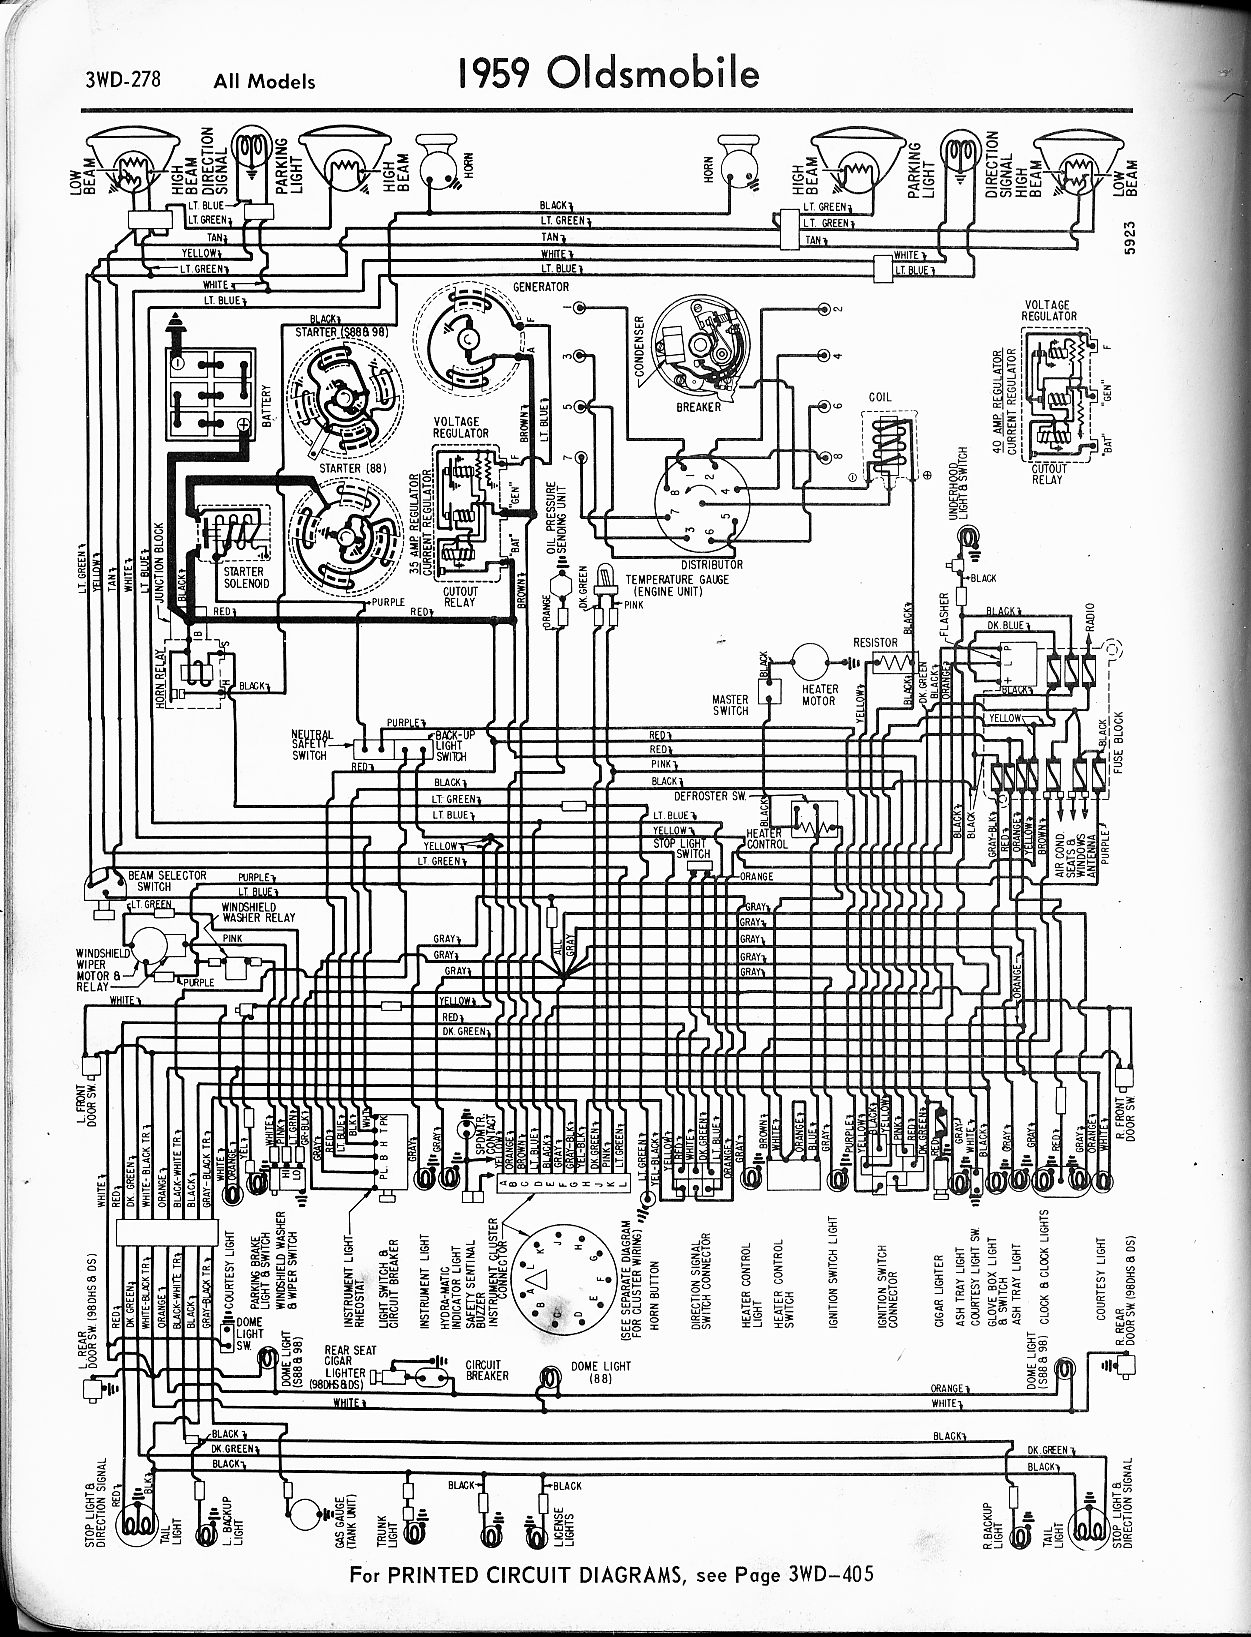 MWire5765 278 oldsmobile wiring diagrams the old car manual project  at bakdesigns.co